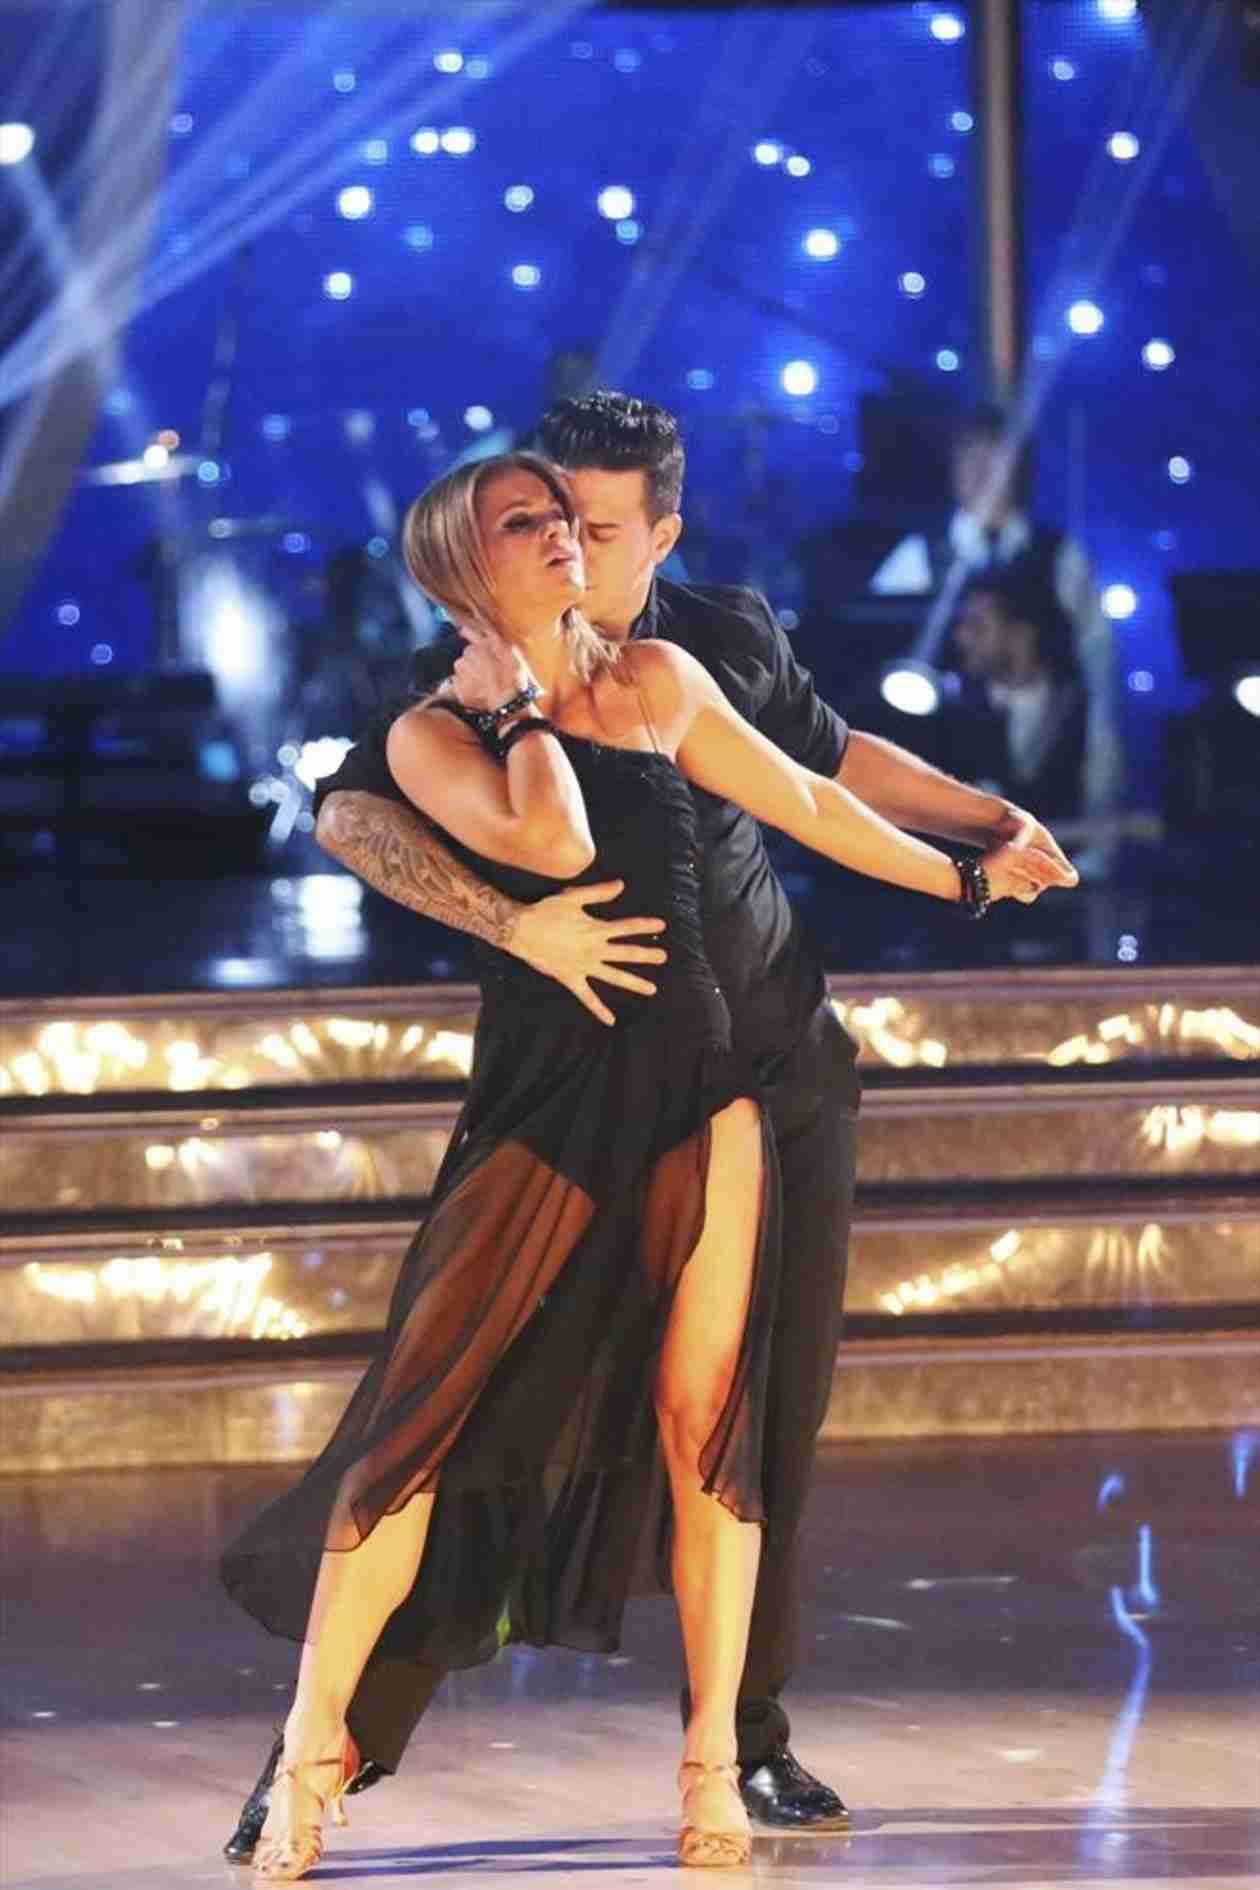 Dancing With the Stars 2014: Candace Cameron Bure and Mark Ballas's Week 3 Jive (VIDEO)